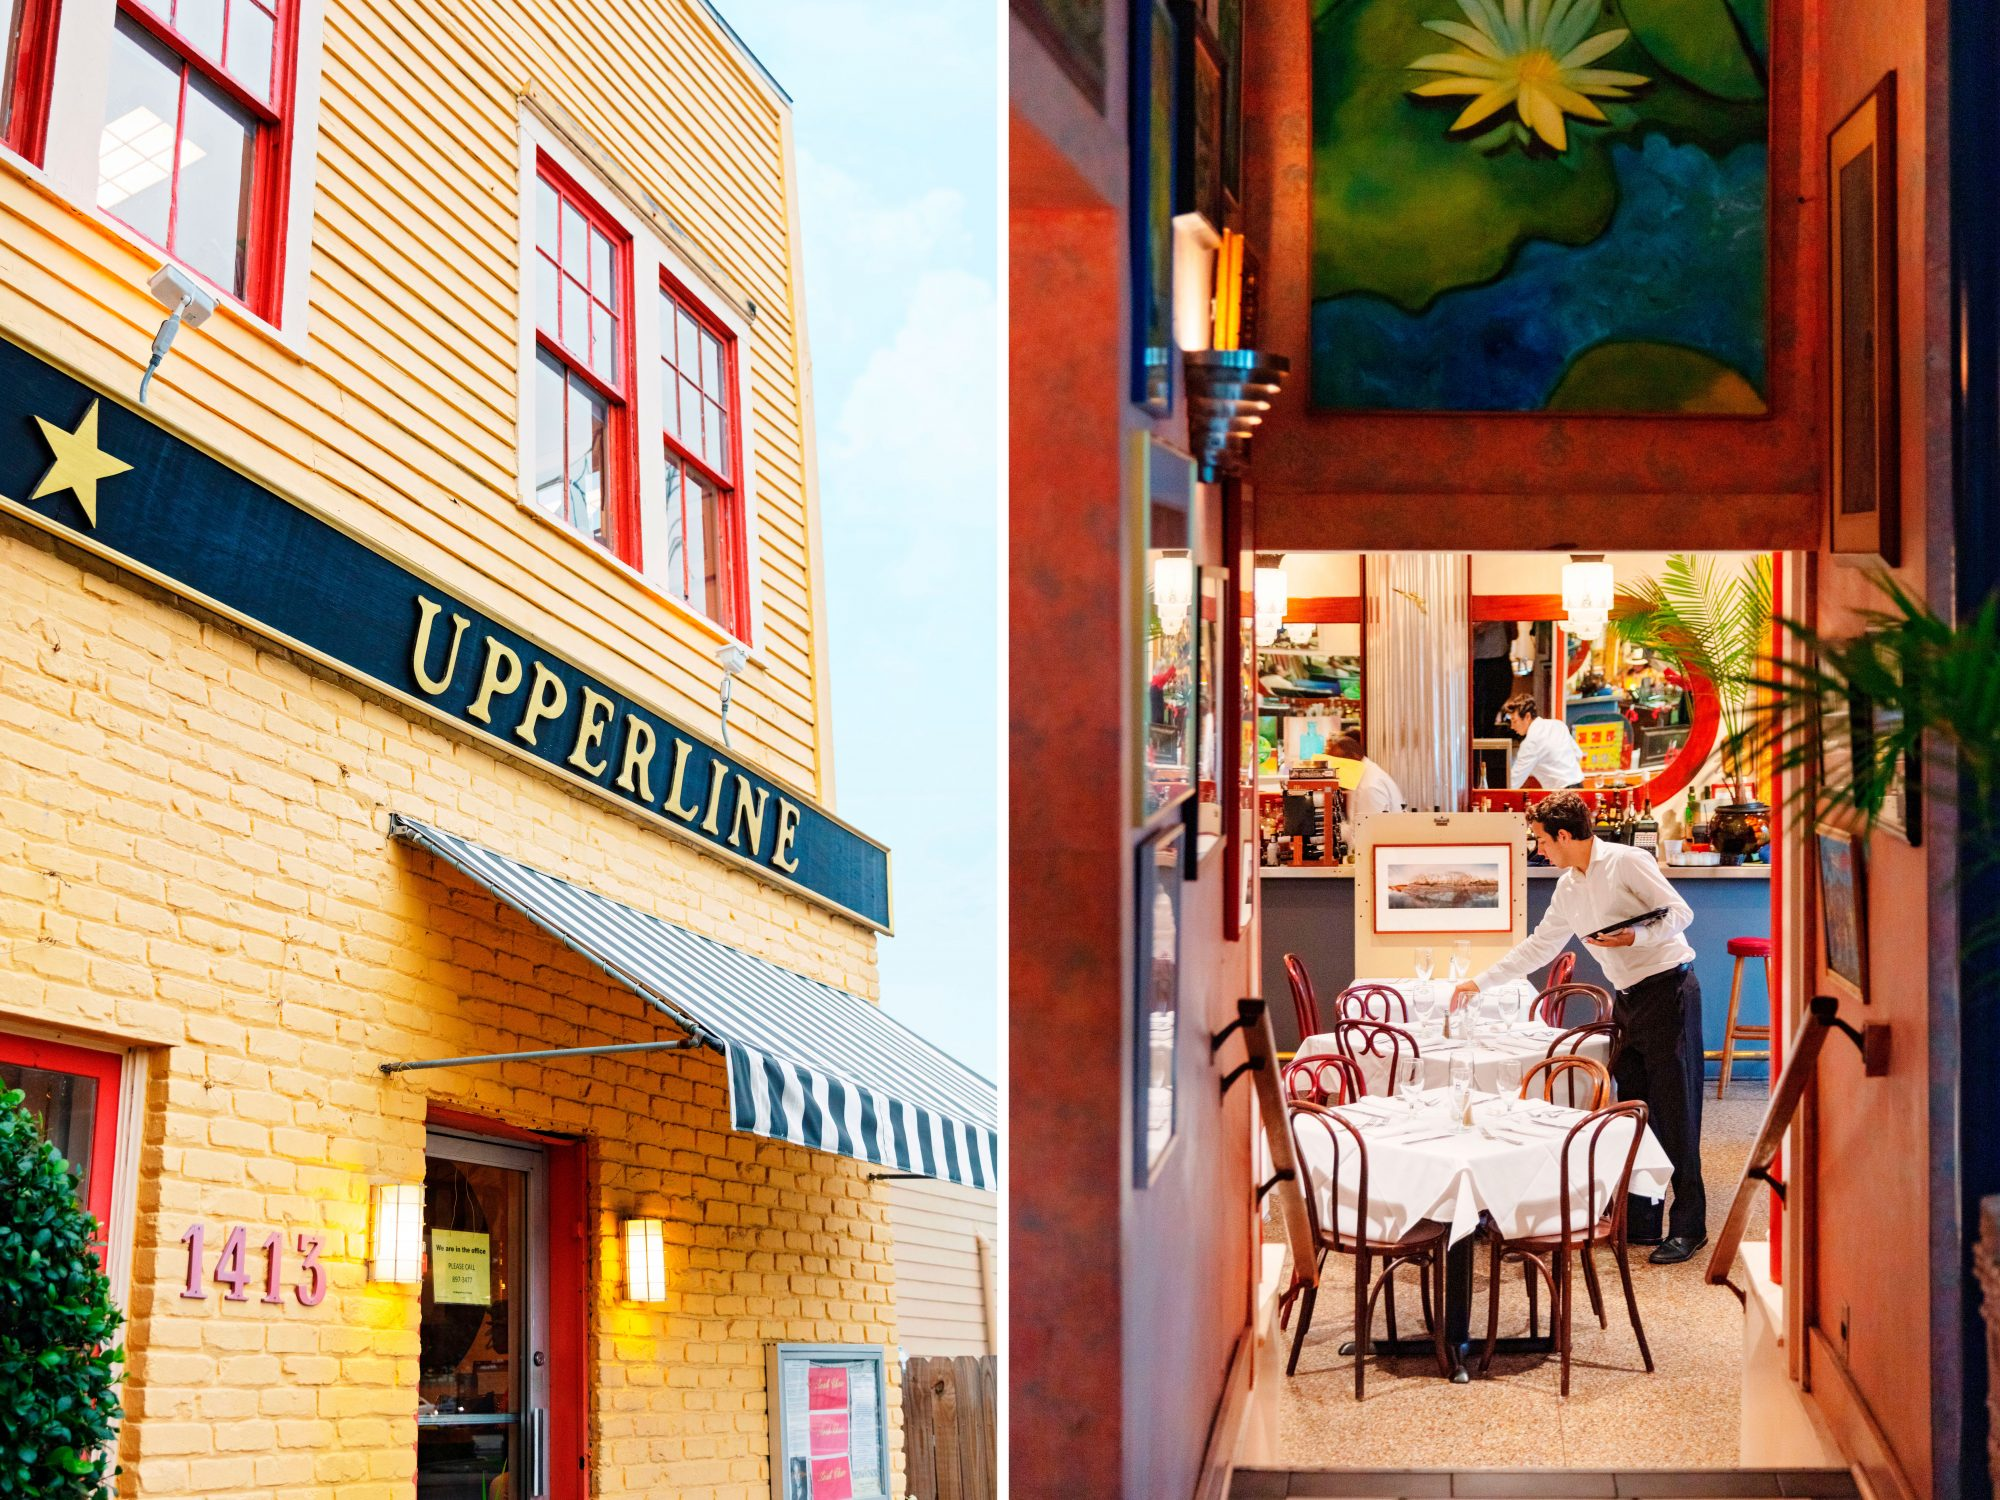 Upperline Restaurant Exterior